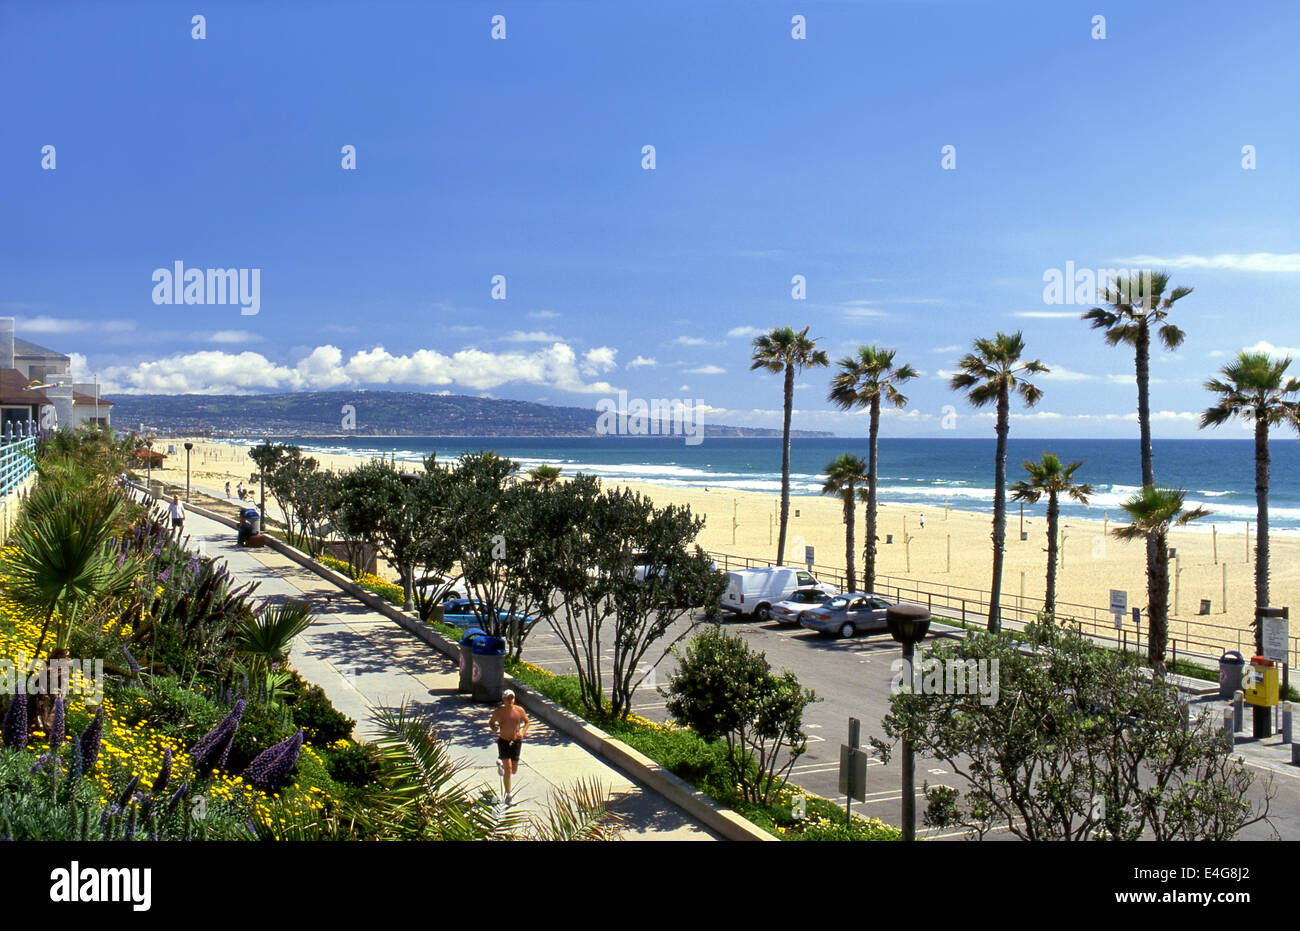 Jogger on Manhattan Beach bike path with Palos Verdes Peninsula in background in Southern California, USA - Stock Image